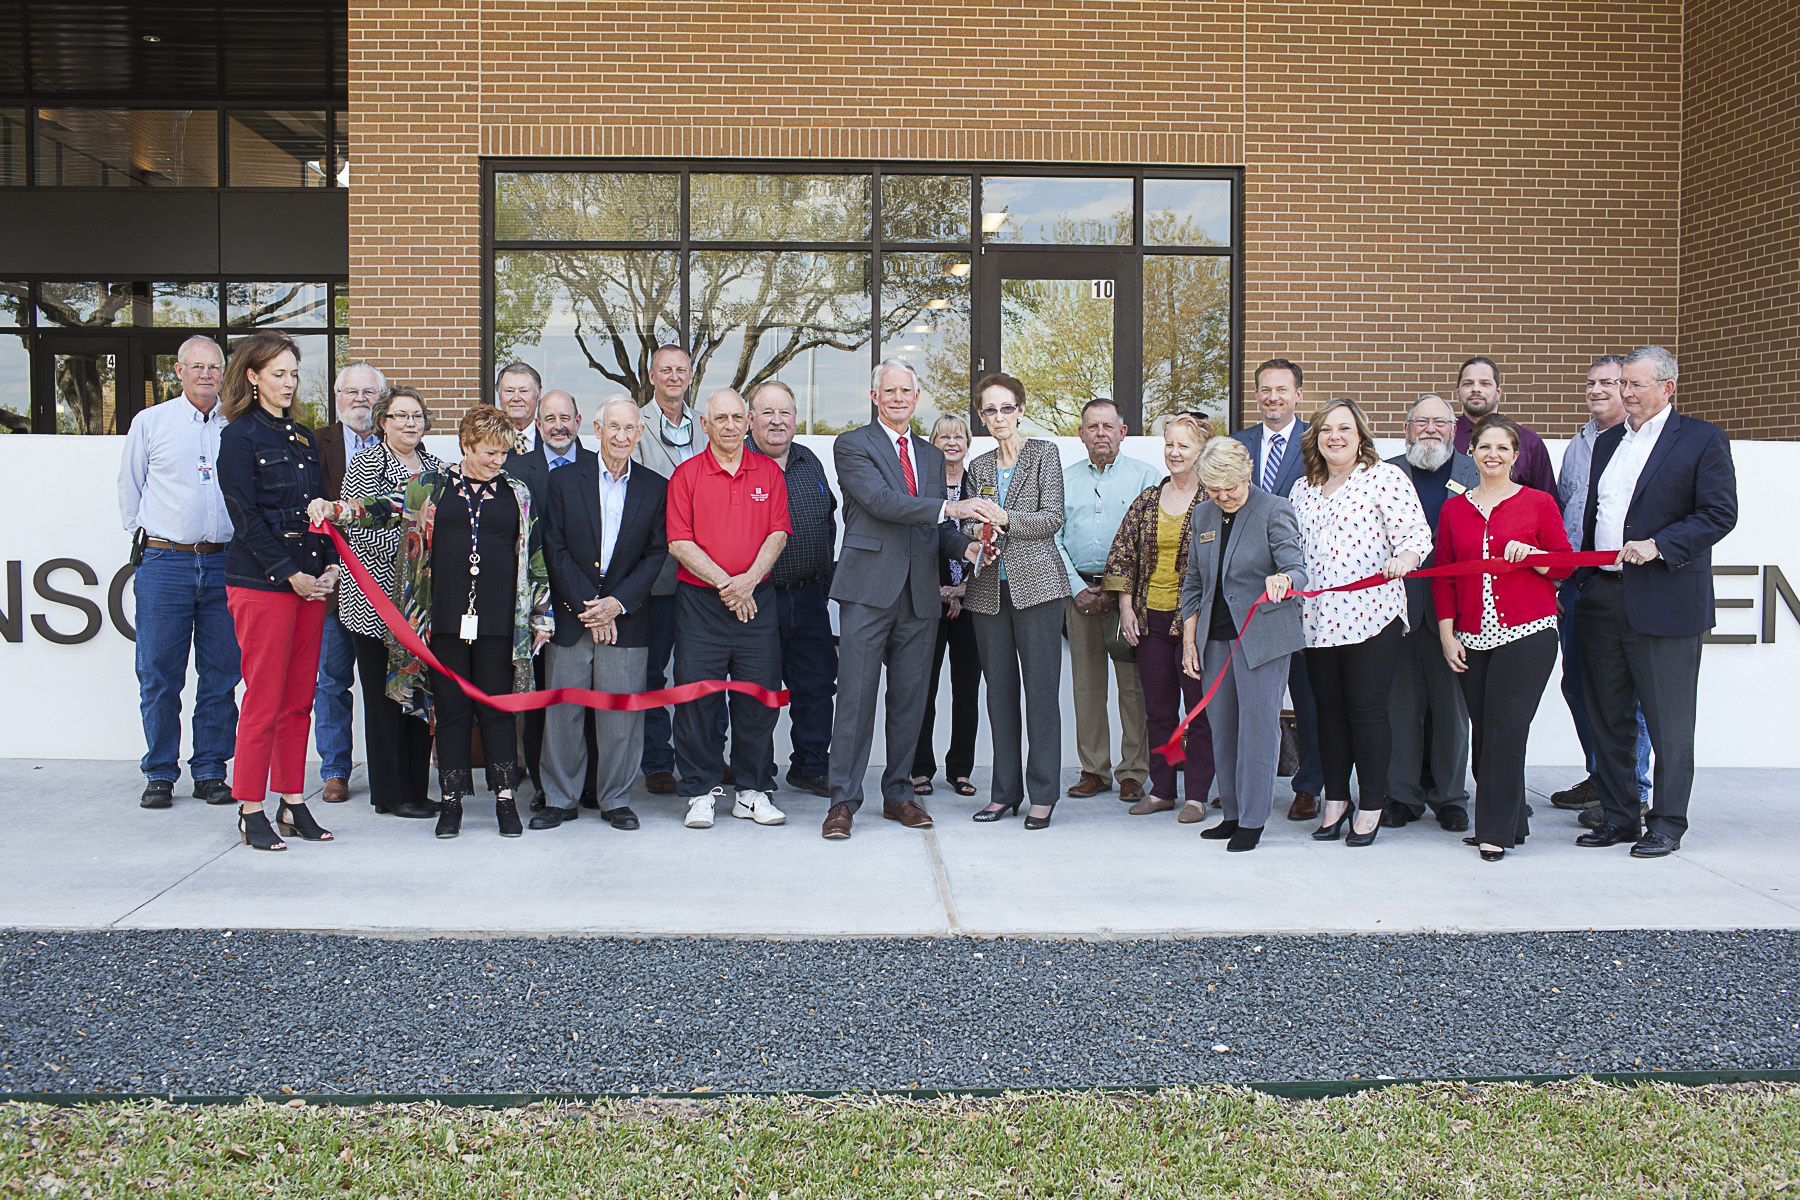 AN ENHANCED ABILITY TO LEARN - Renovated Johnson Health Occupations Center boosts student learning